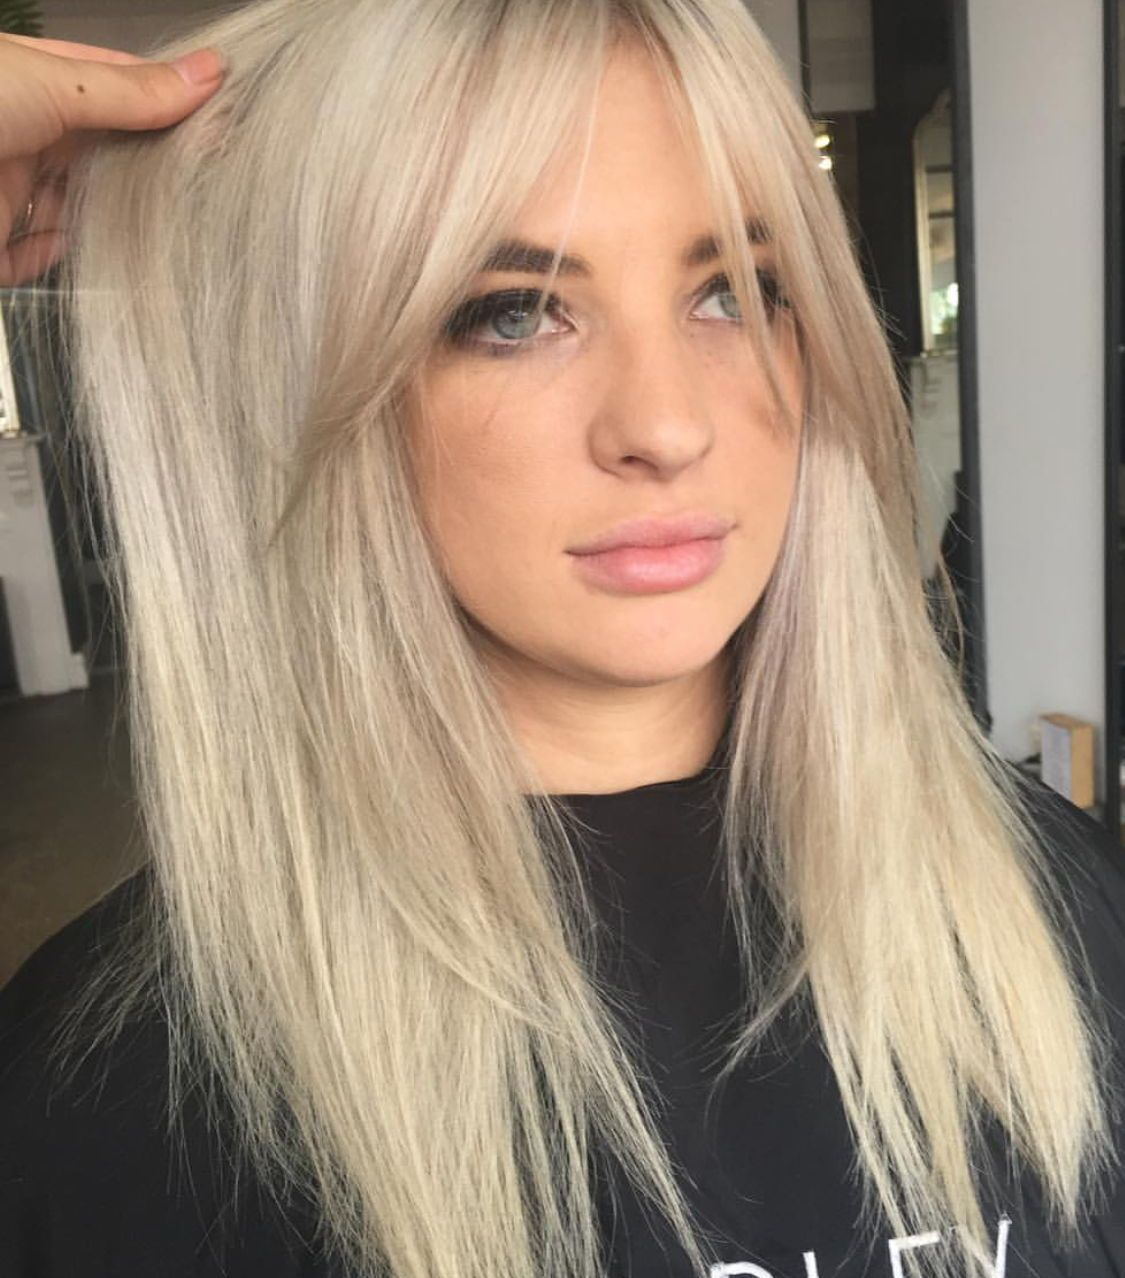 Quickhairstyles Simplehairstyles In 2020 Hair Styles Blonde Hair With Bangs Long Hair Styles